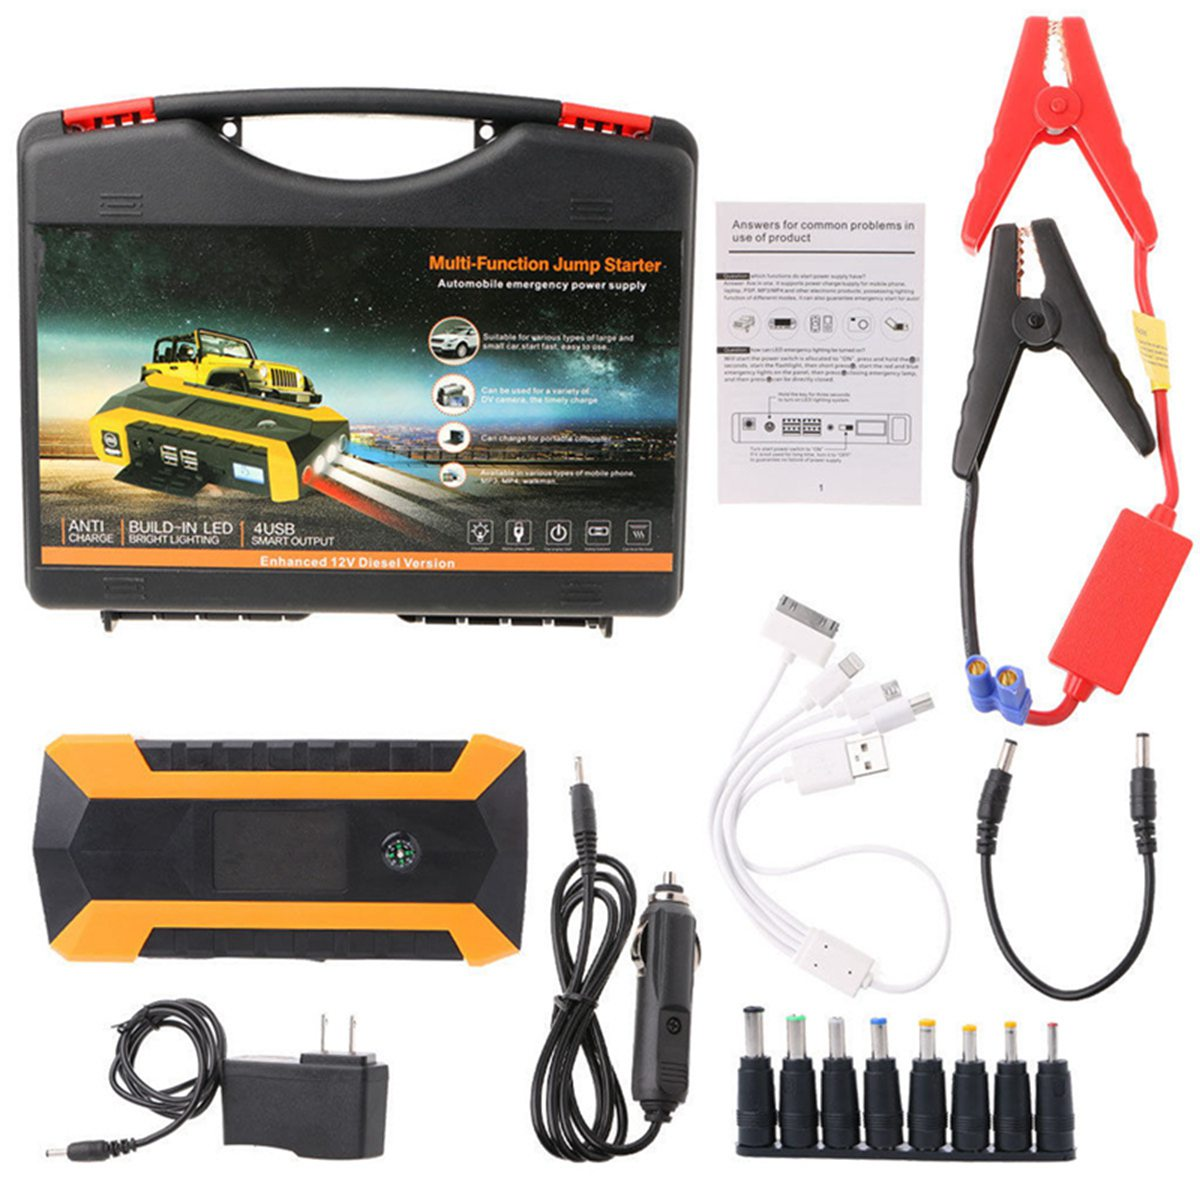 89800mAh 12V 4USB Car Jump Starter Car Battery Charger Starting Booster Power Bank Tool Kit For Auto Starting Device mini portable 68000mah car battery charger starting device car jump starter booster power bank for a 12v auto starting device